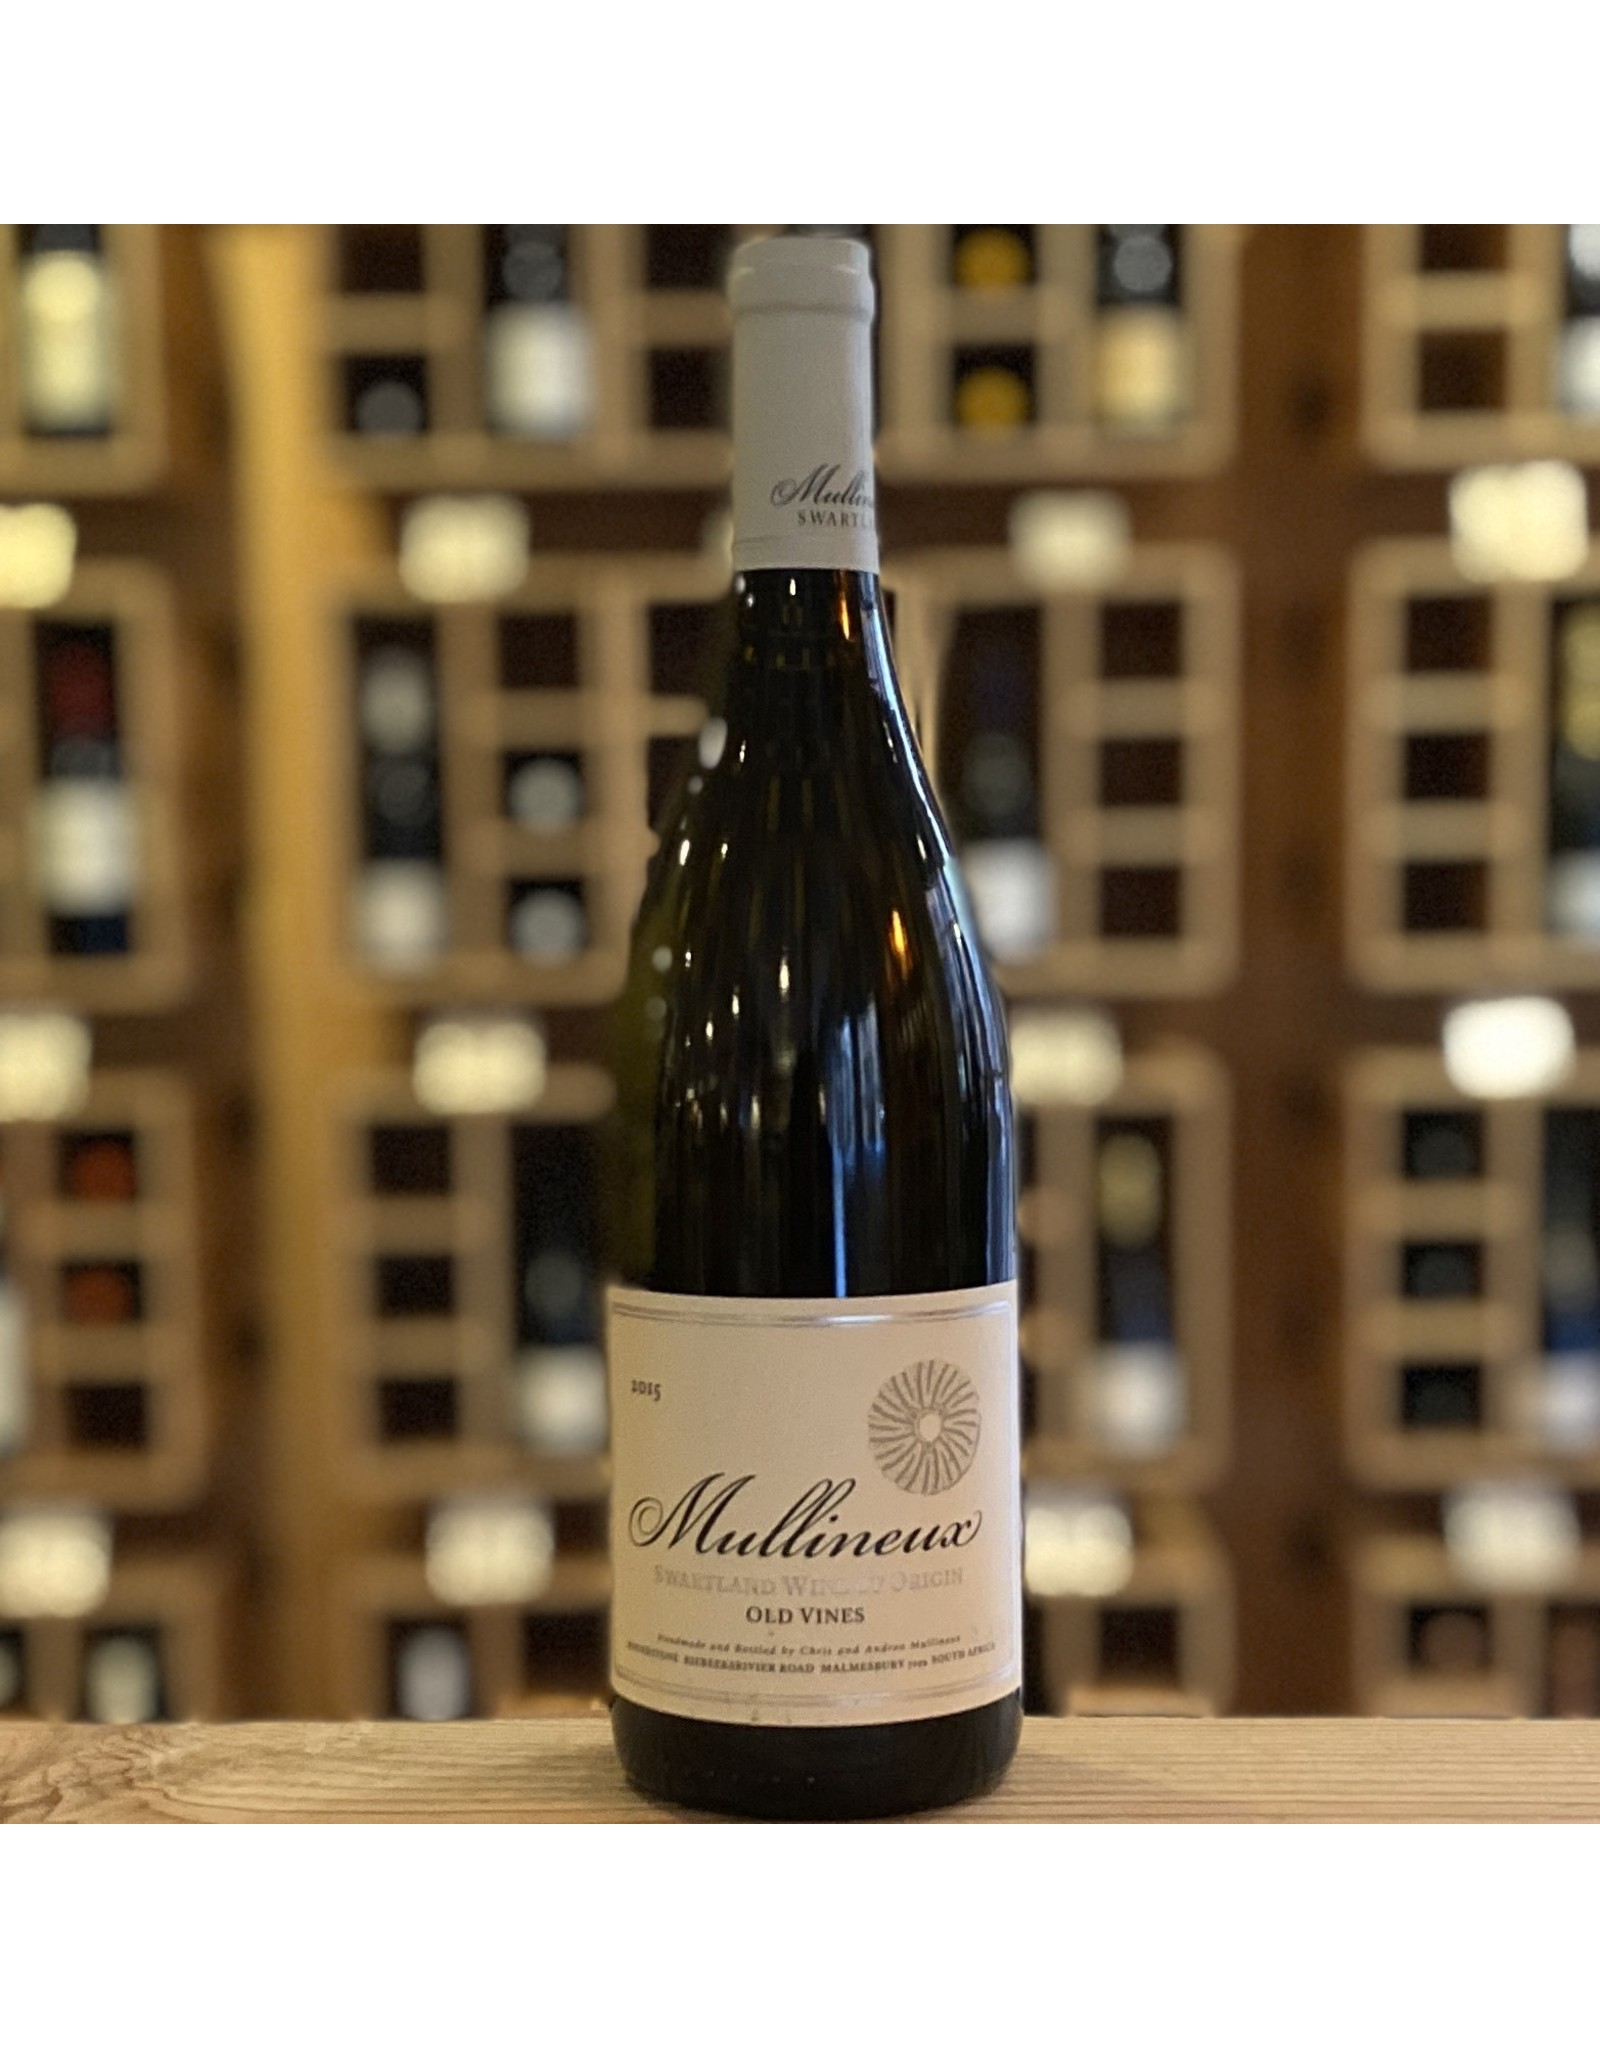 South Africa Mullineux White Blend 2015 - Swartland, South Africa